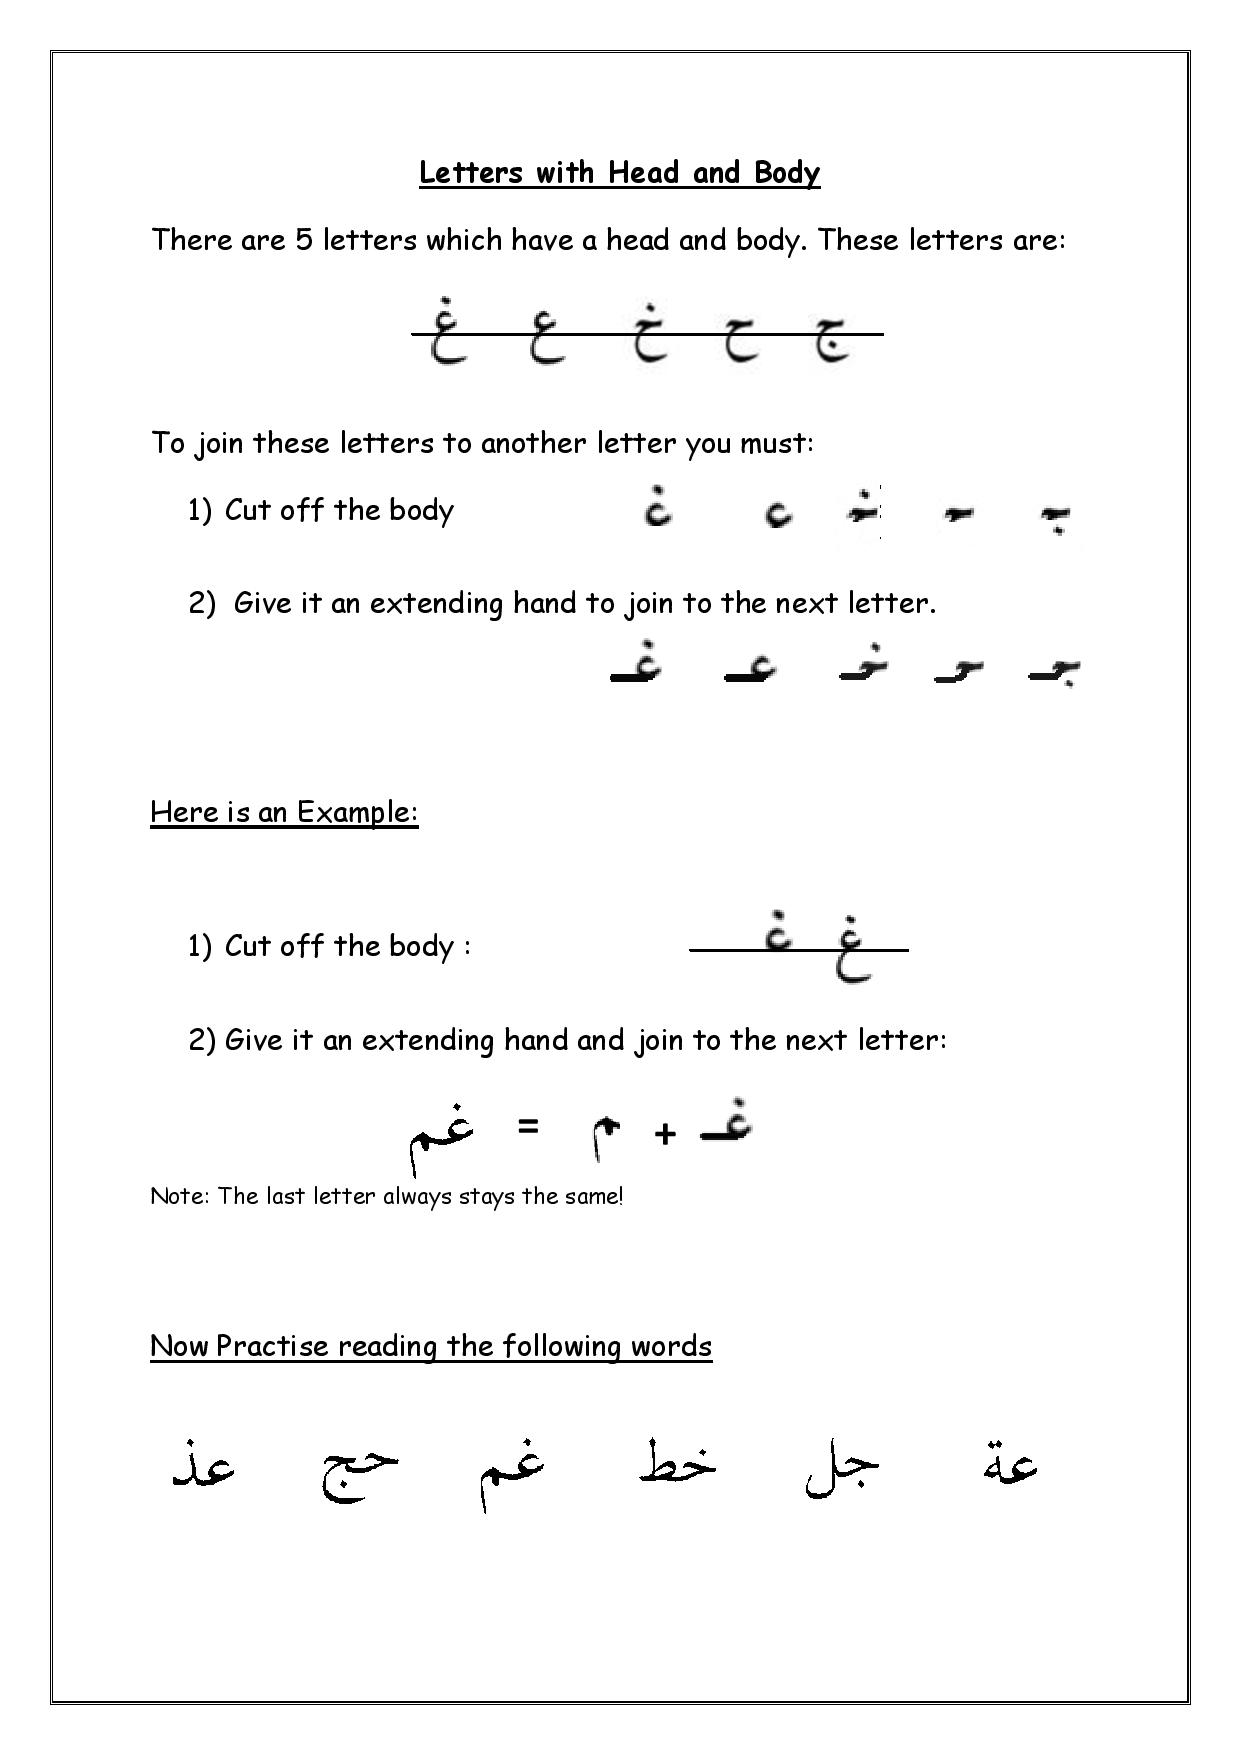 Arabic worksheets | arabic adventures | Page 4